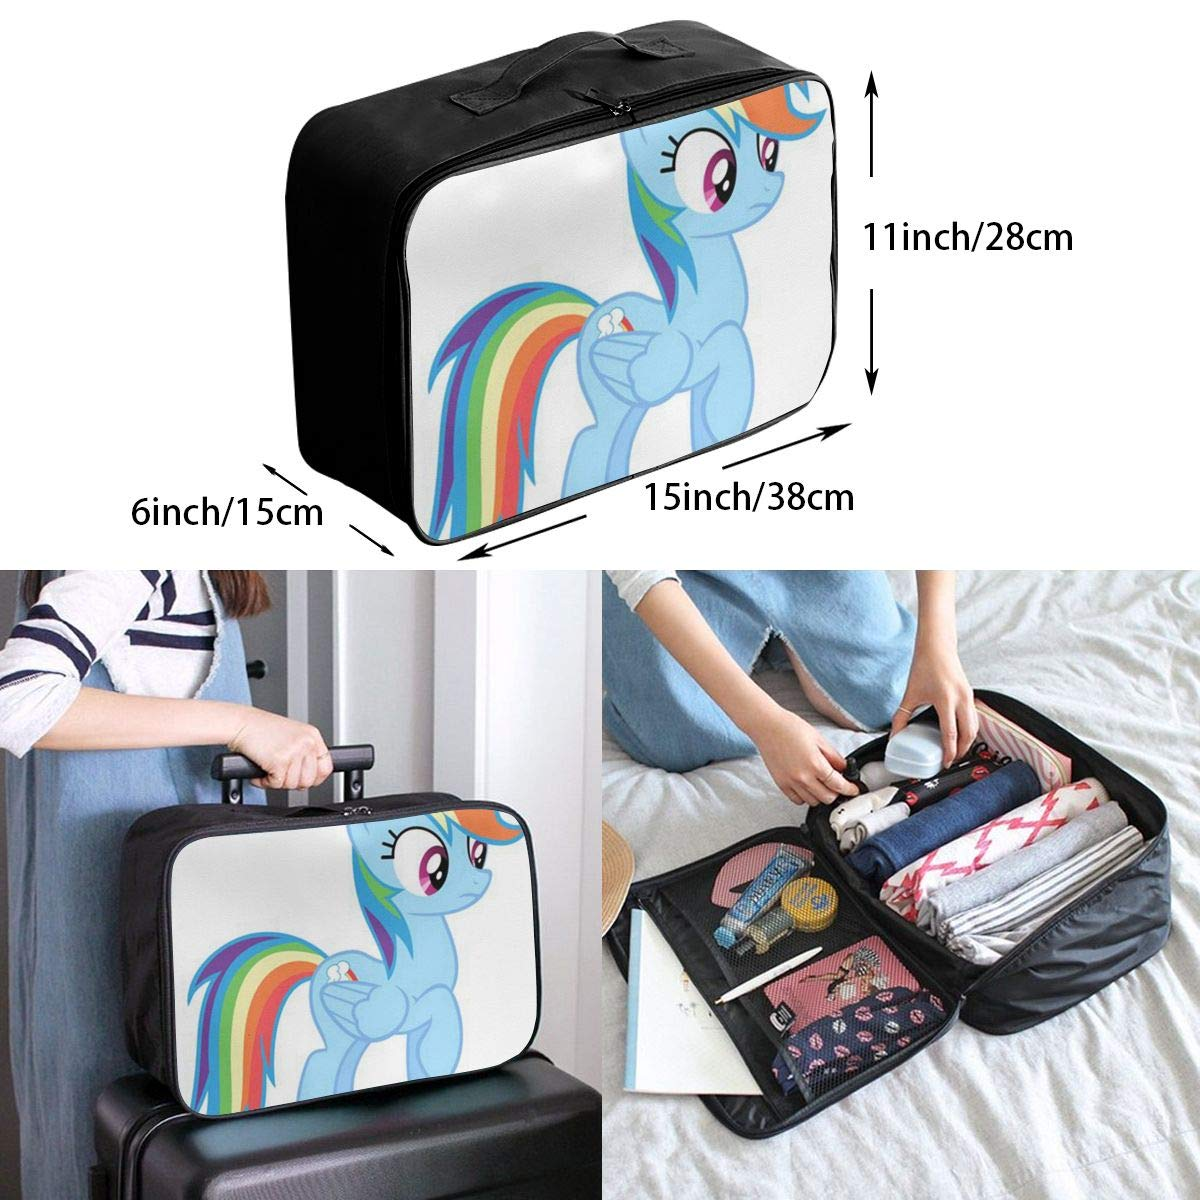 Lightweight Large Capacity Portable Luggage Bag Cute Cartoon Unicorns On Rainbows Travel Waterproof Foldable Storage Carry Tote Bag